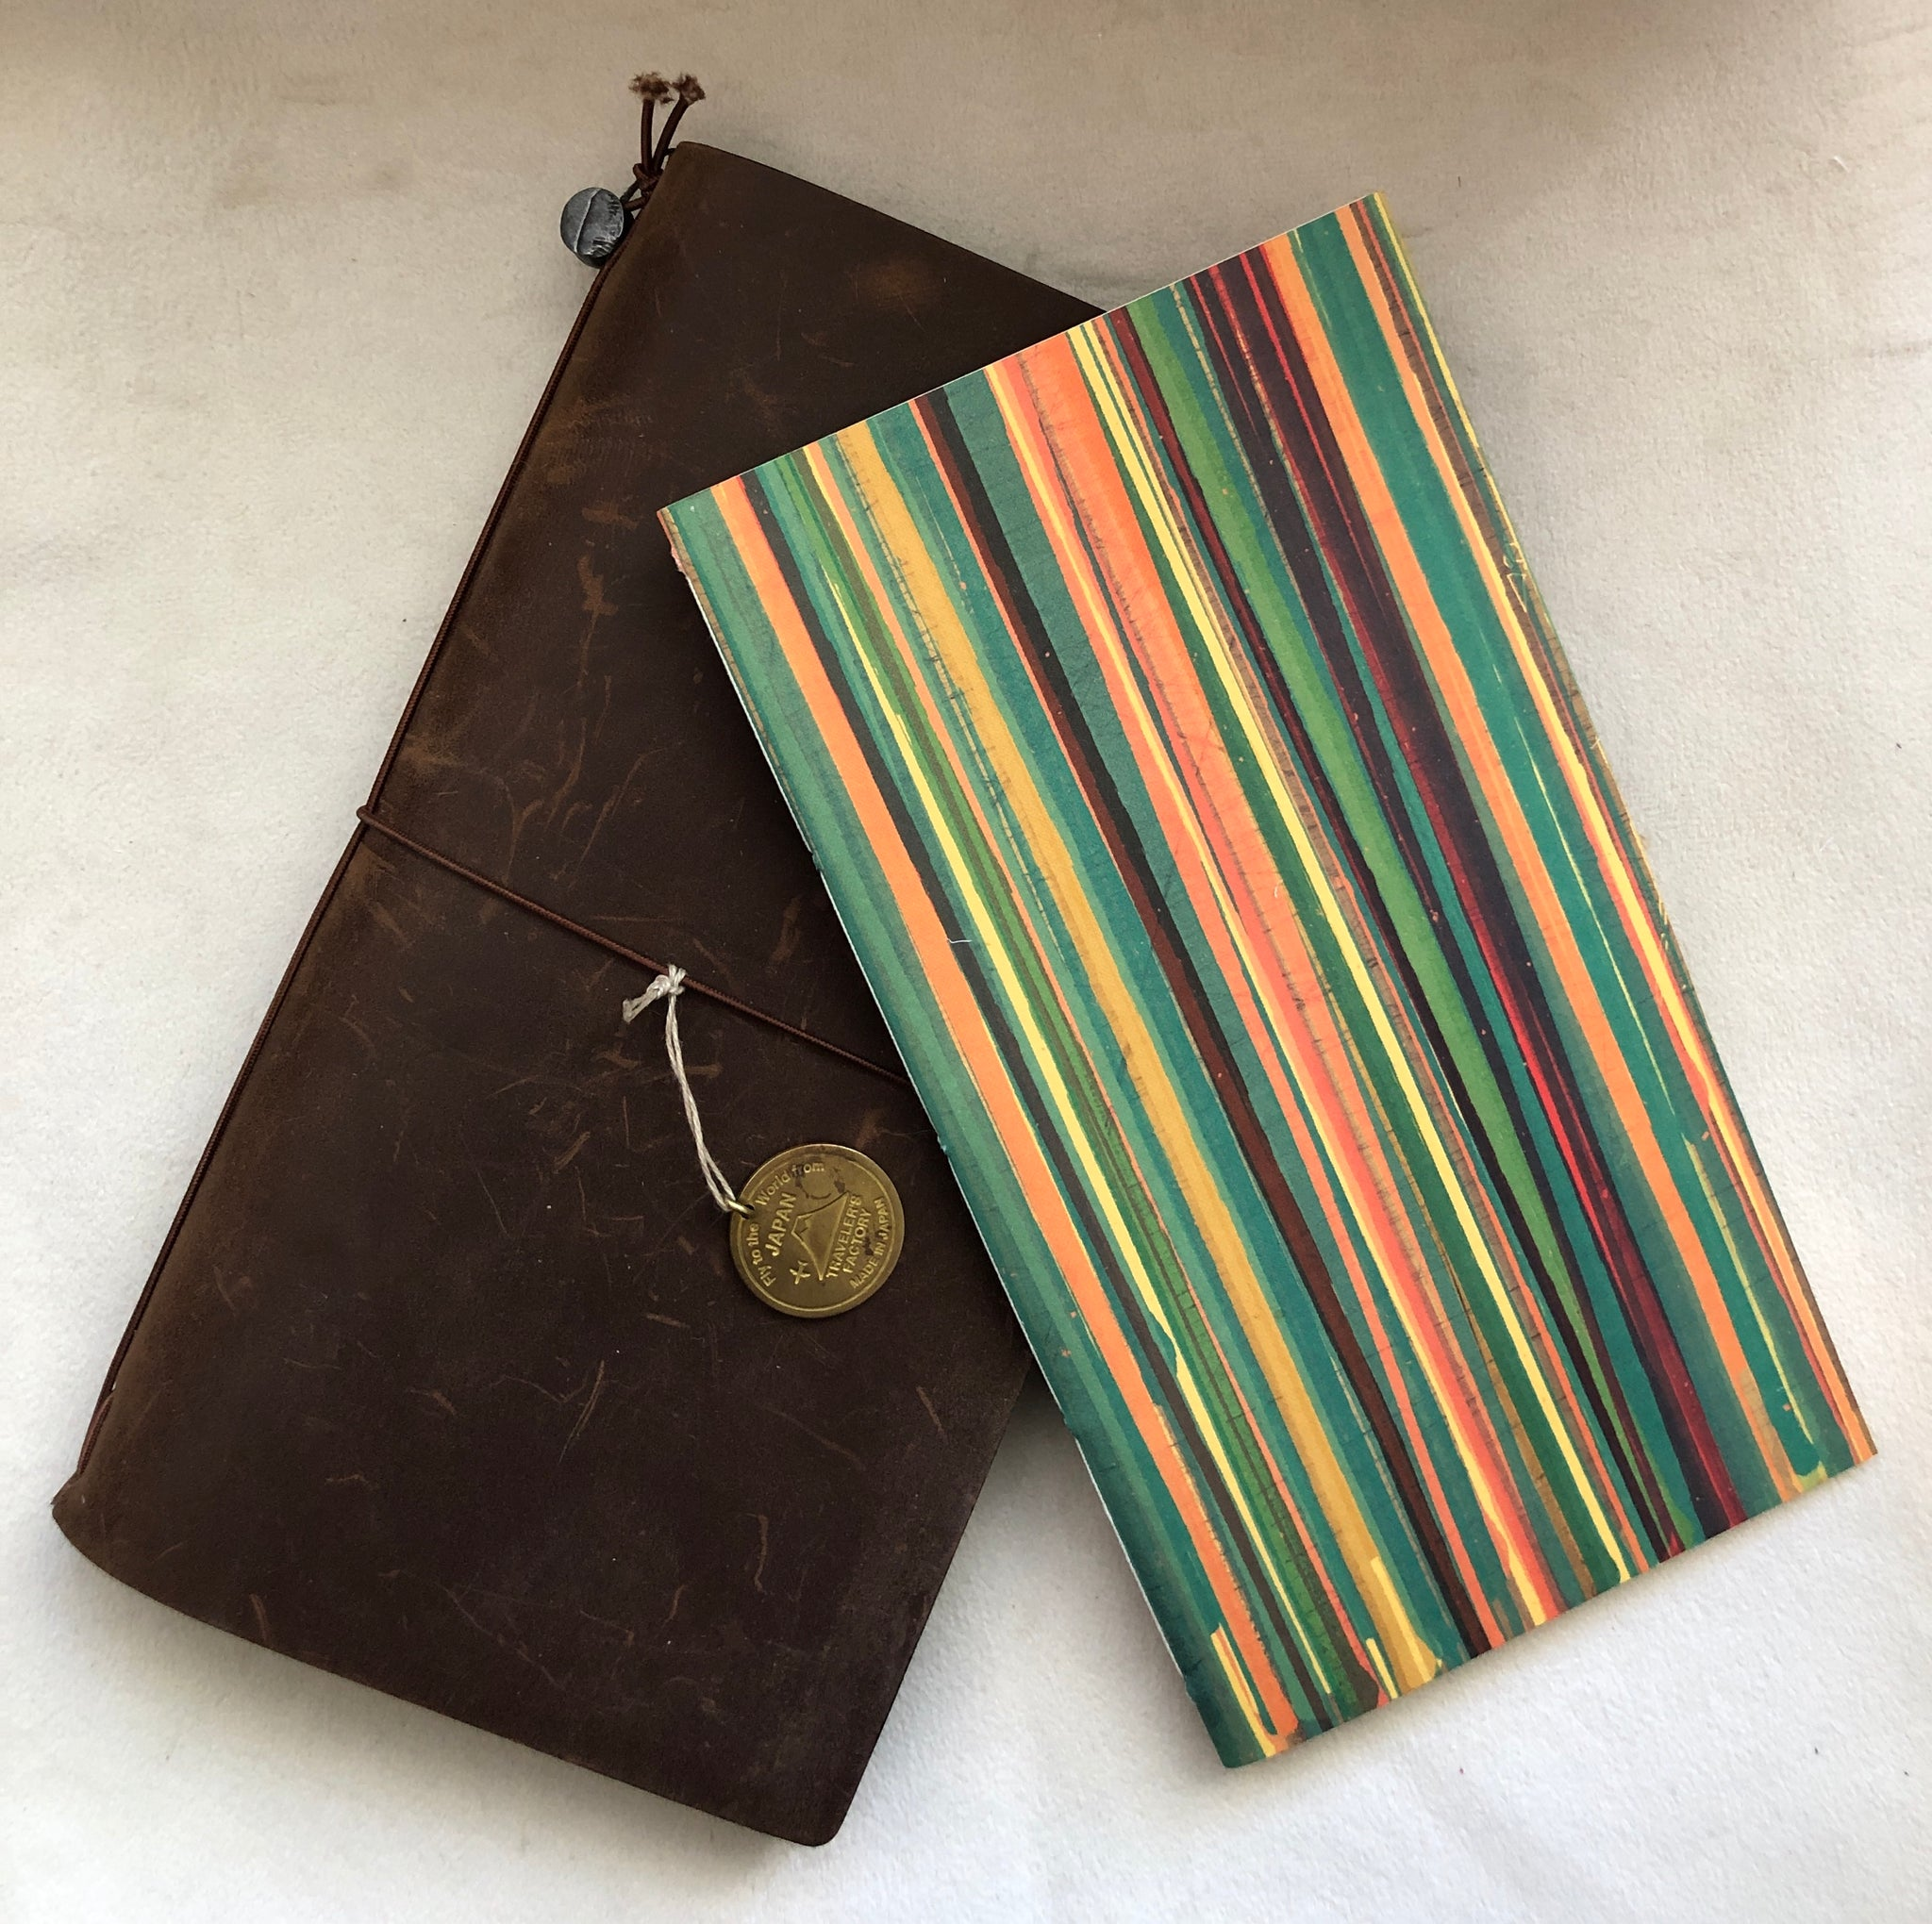 D. TN Sized Notebook 089